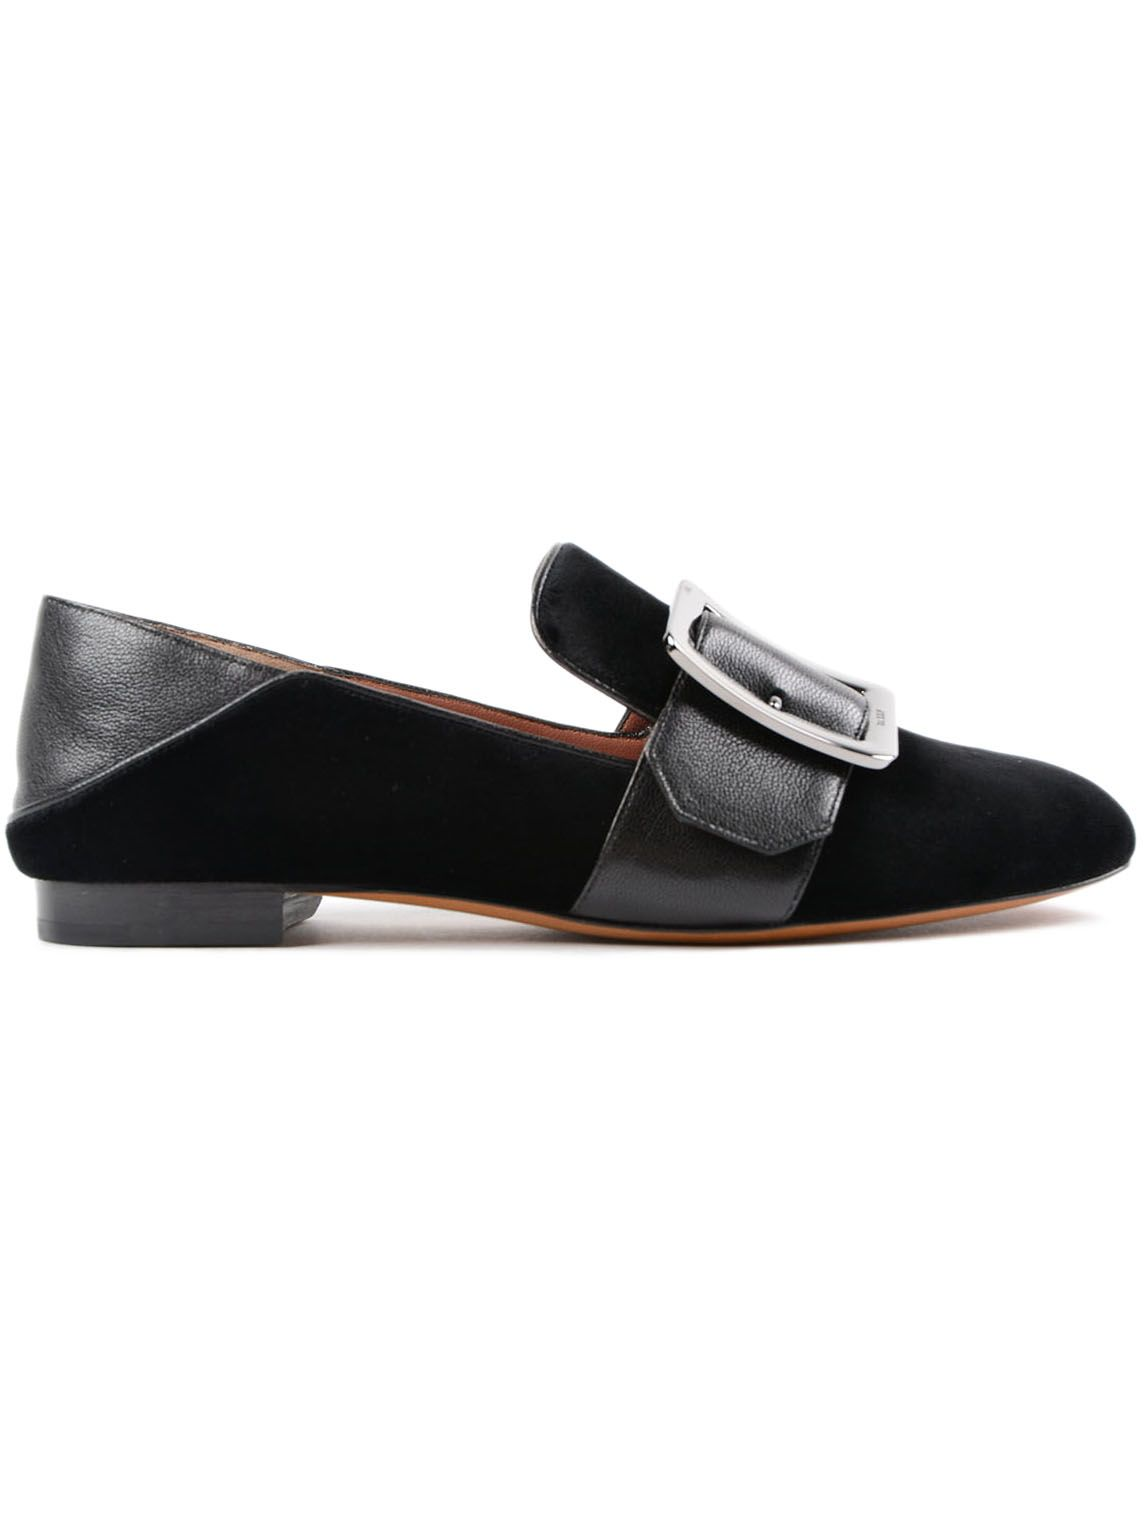 Bally Buckle Slippers